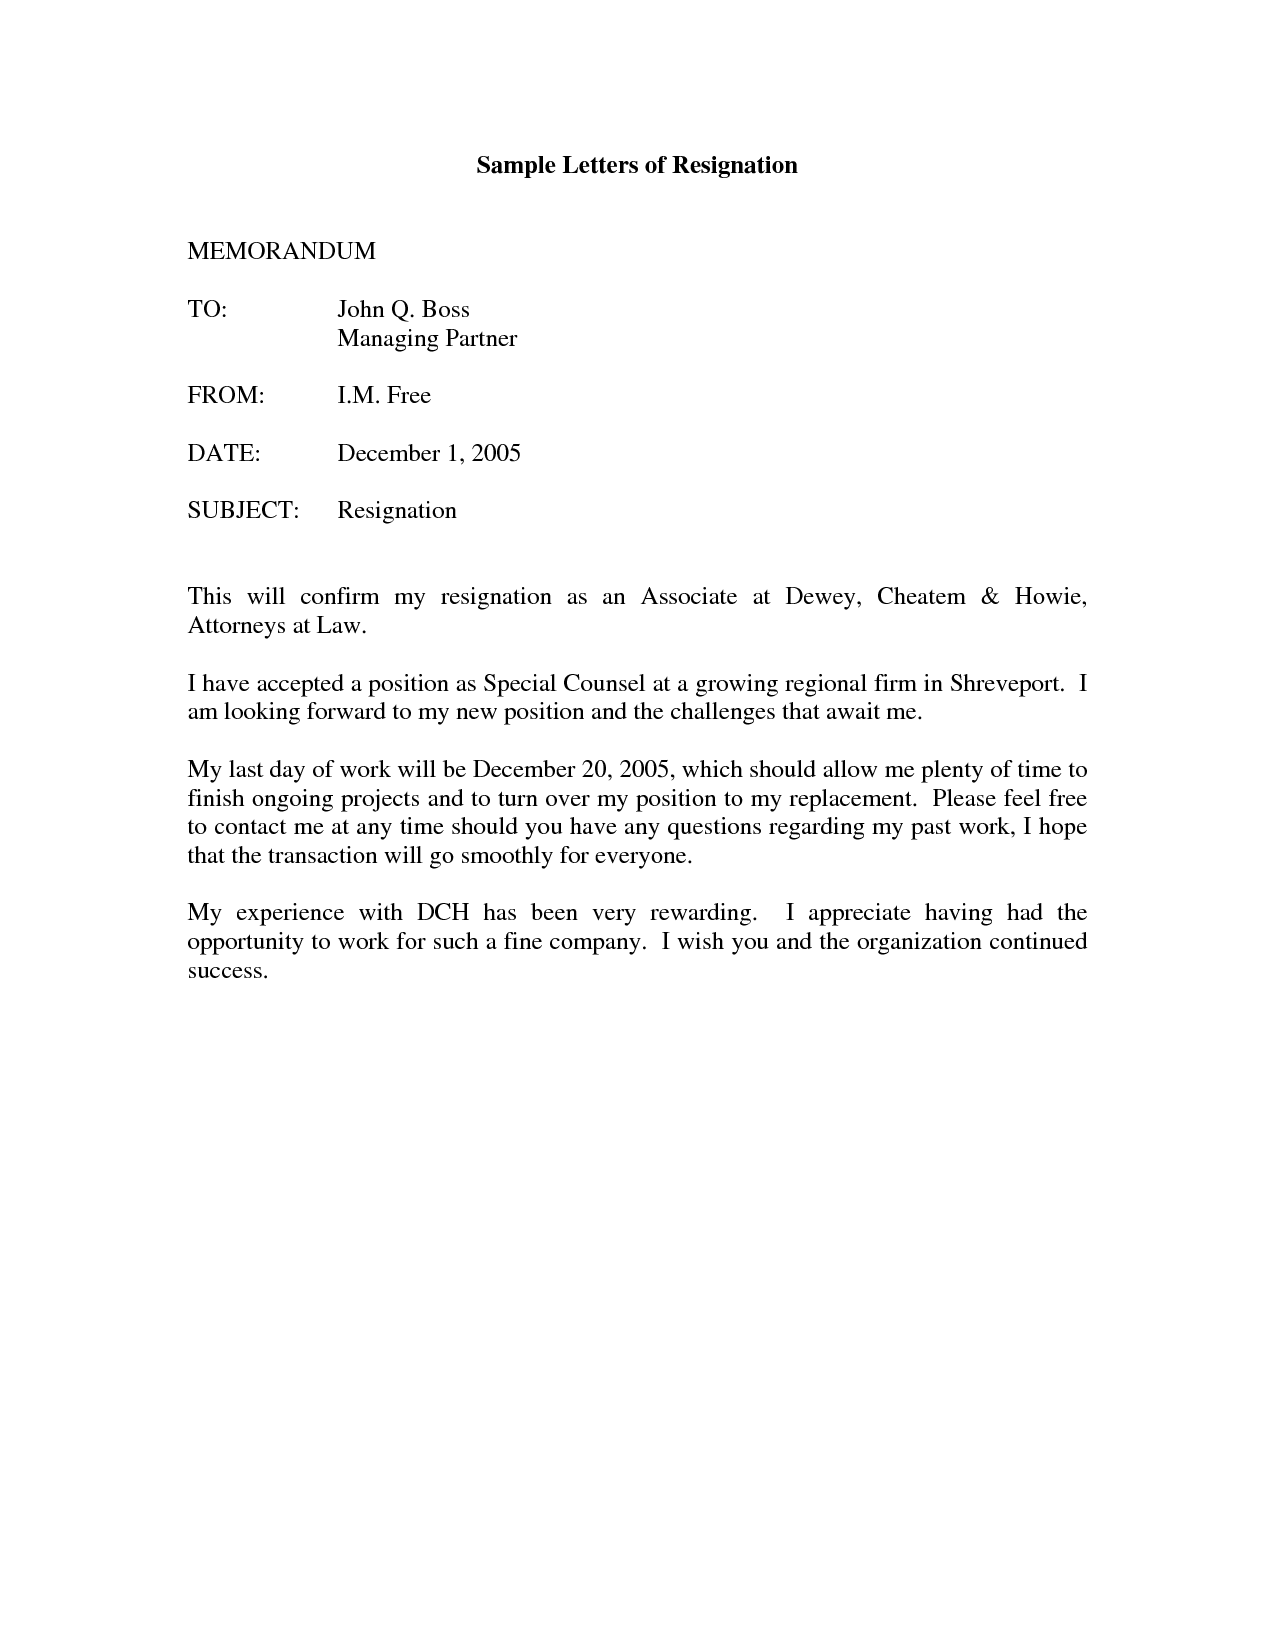 Printable Sample Letter of Resignation Form – Sample Letter of Resignation Template